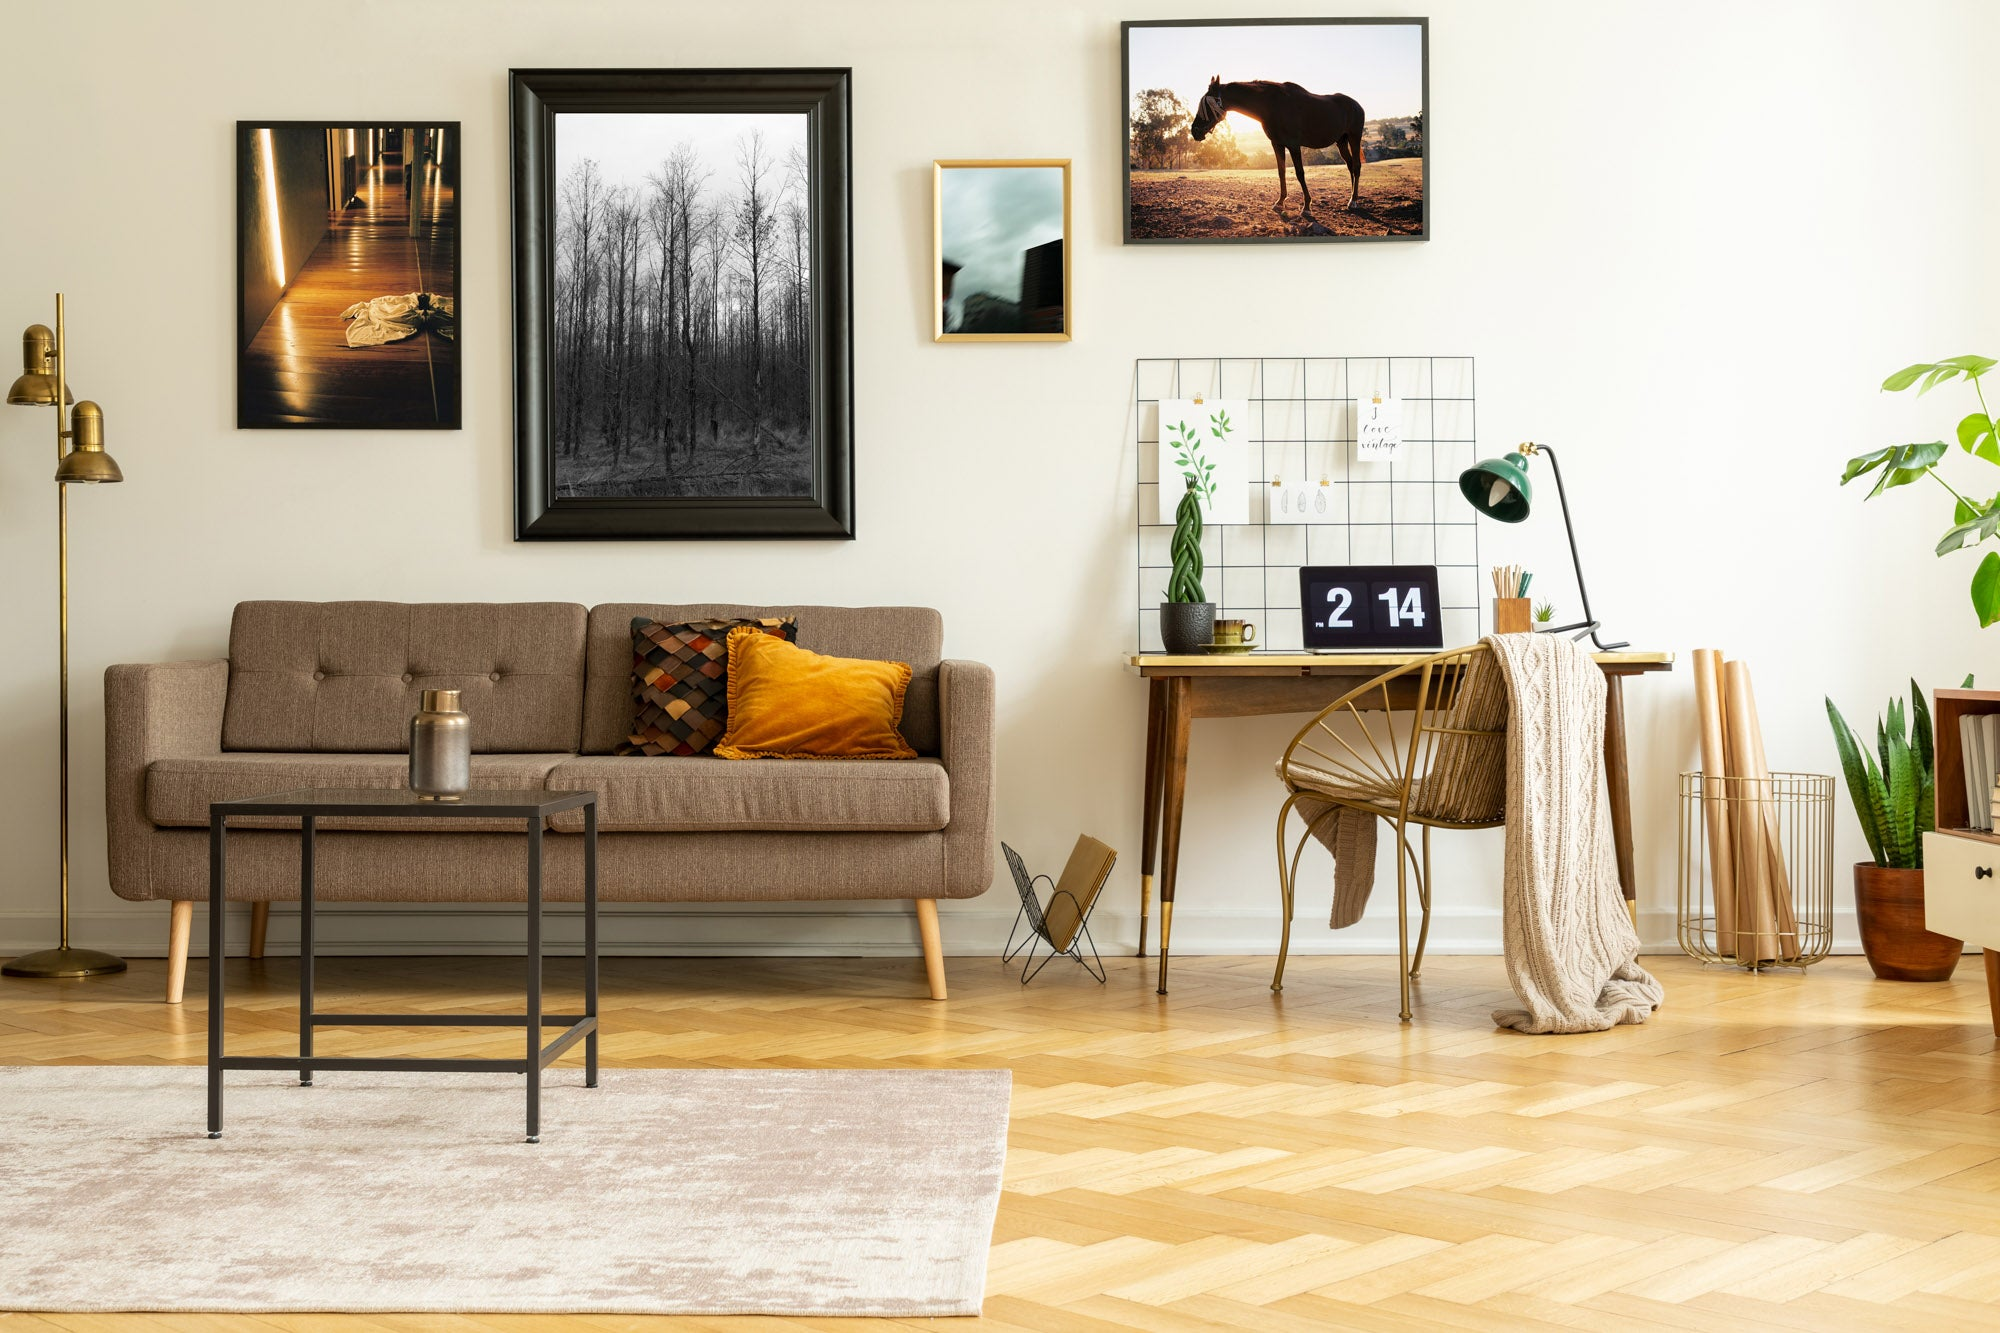 """A photograph with a white towel on the wooden floor in a hallway"". Artwork, Prints, wall art, GoldCoast Queensland Australia, Photographic prints, Ocean Beach, Framed artwork, Beach Posters   Film photography, Vintage photo style,  Interior design, Film photography Pictures sun & surf, Abstract, ""A room with 4 pictures on the wall and a couch a desk""."